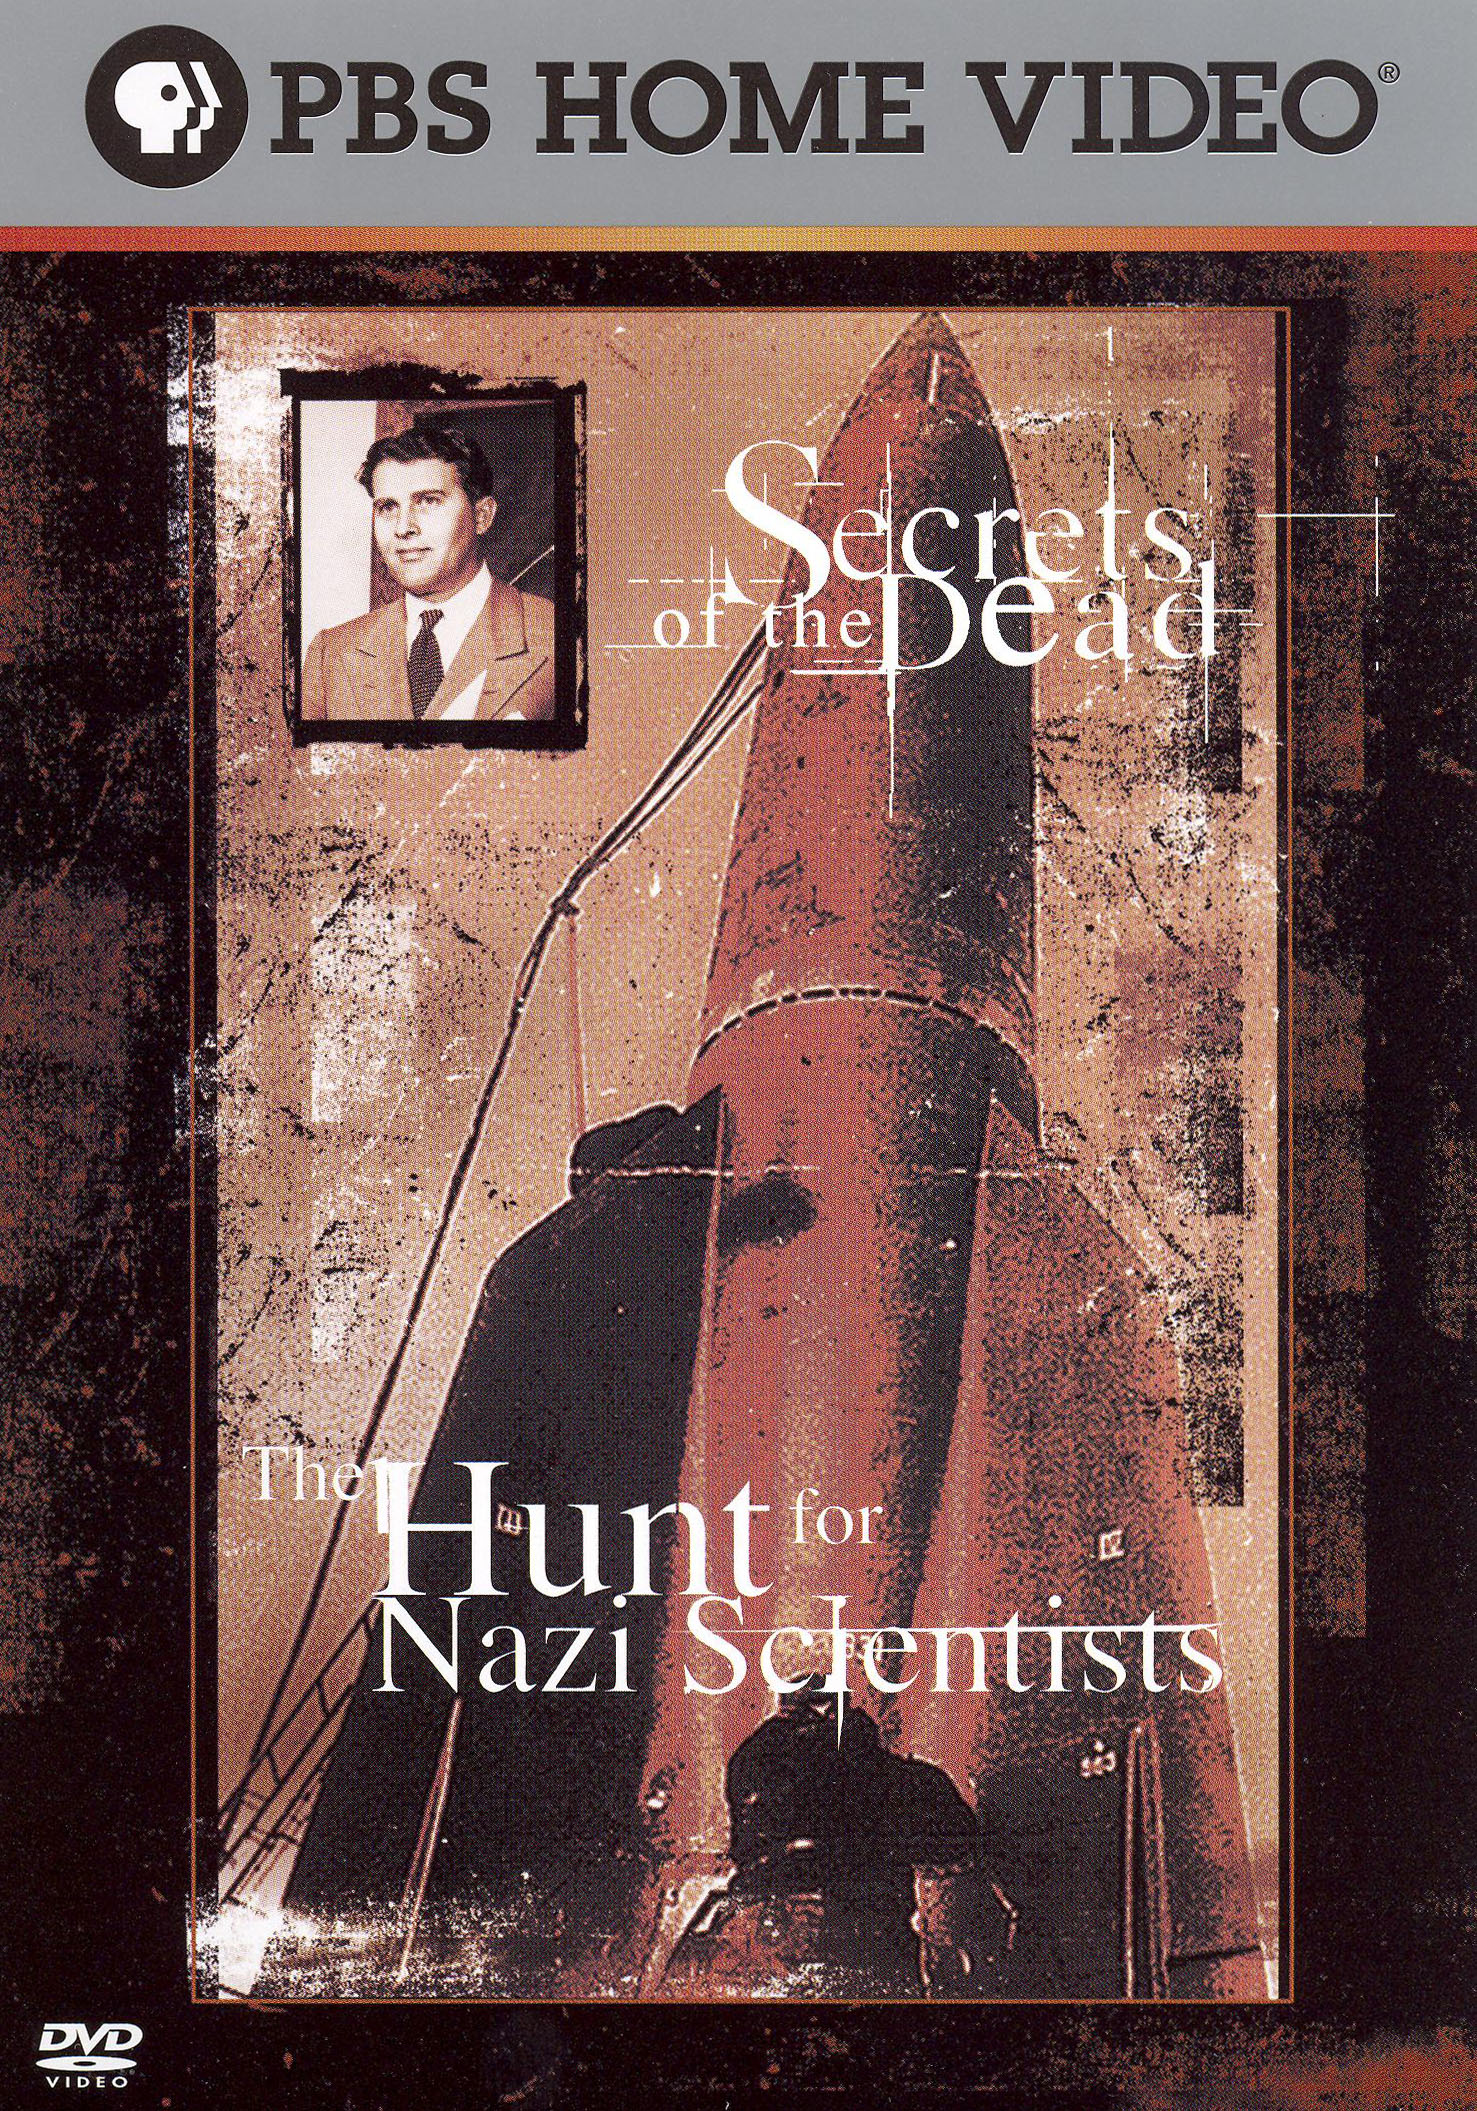 Secrets of the Dead: The Hunt for Nazi Scientists